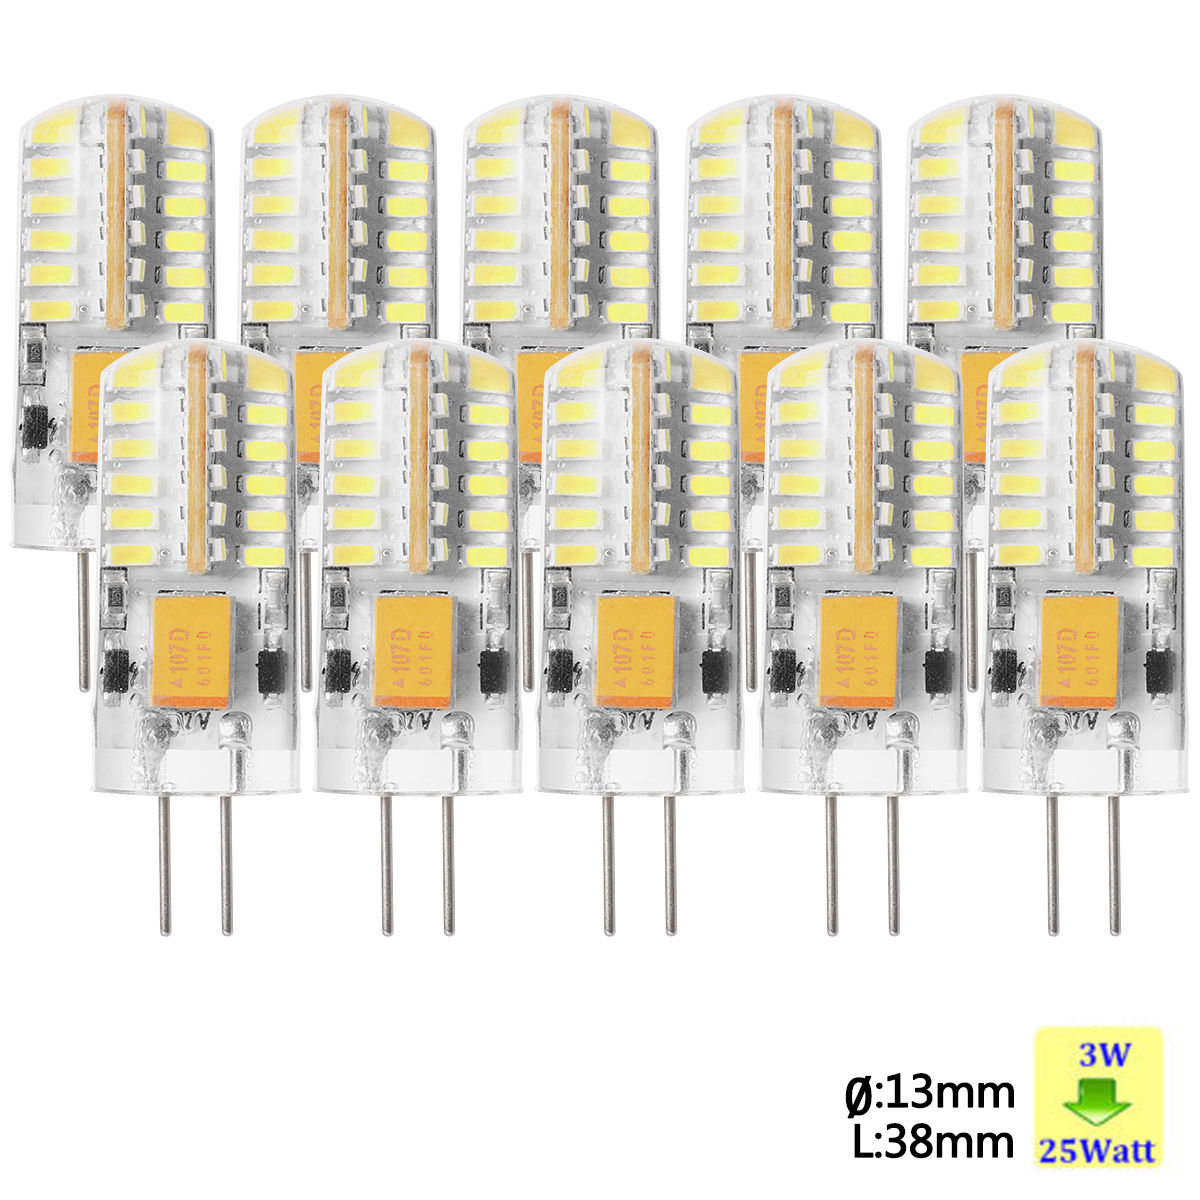 4x 10x sunix g4 led stiftsockel lampe 12v ac dc 1 5w 3w leuchtmittel dimmbar ebay. Black Bedroom Furniture Sets. Home Design Ideas